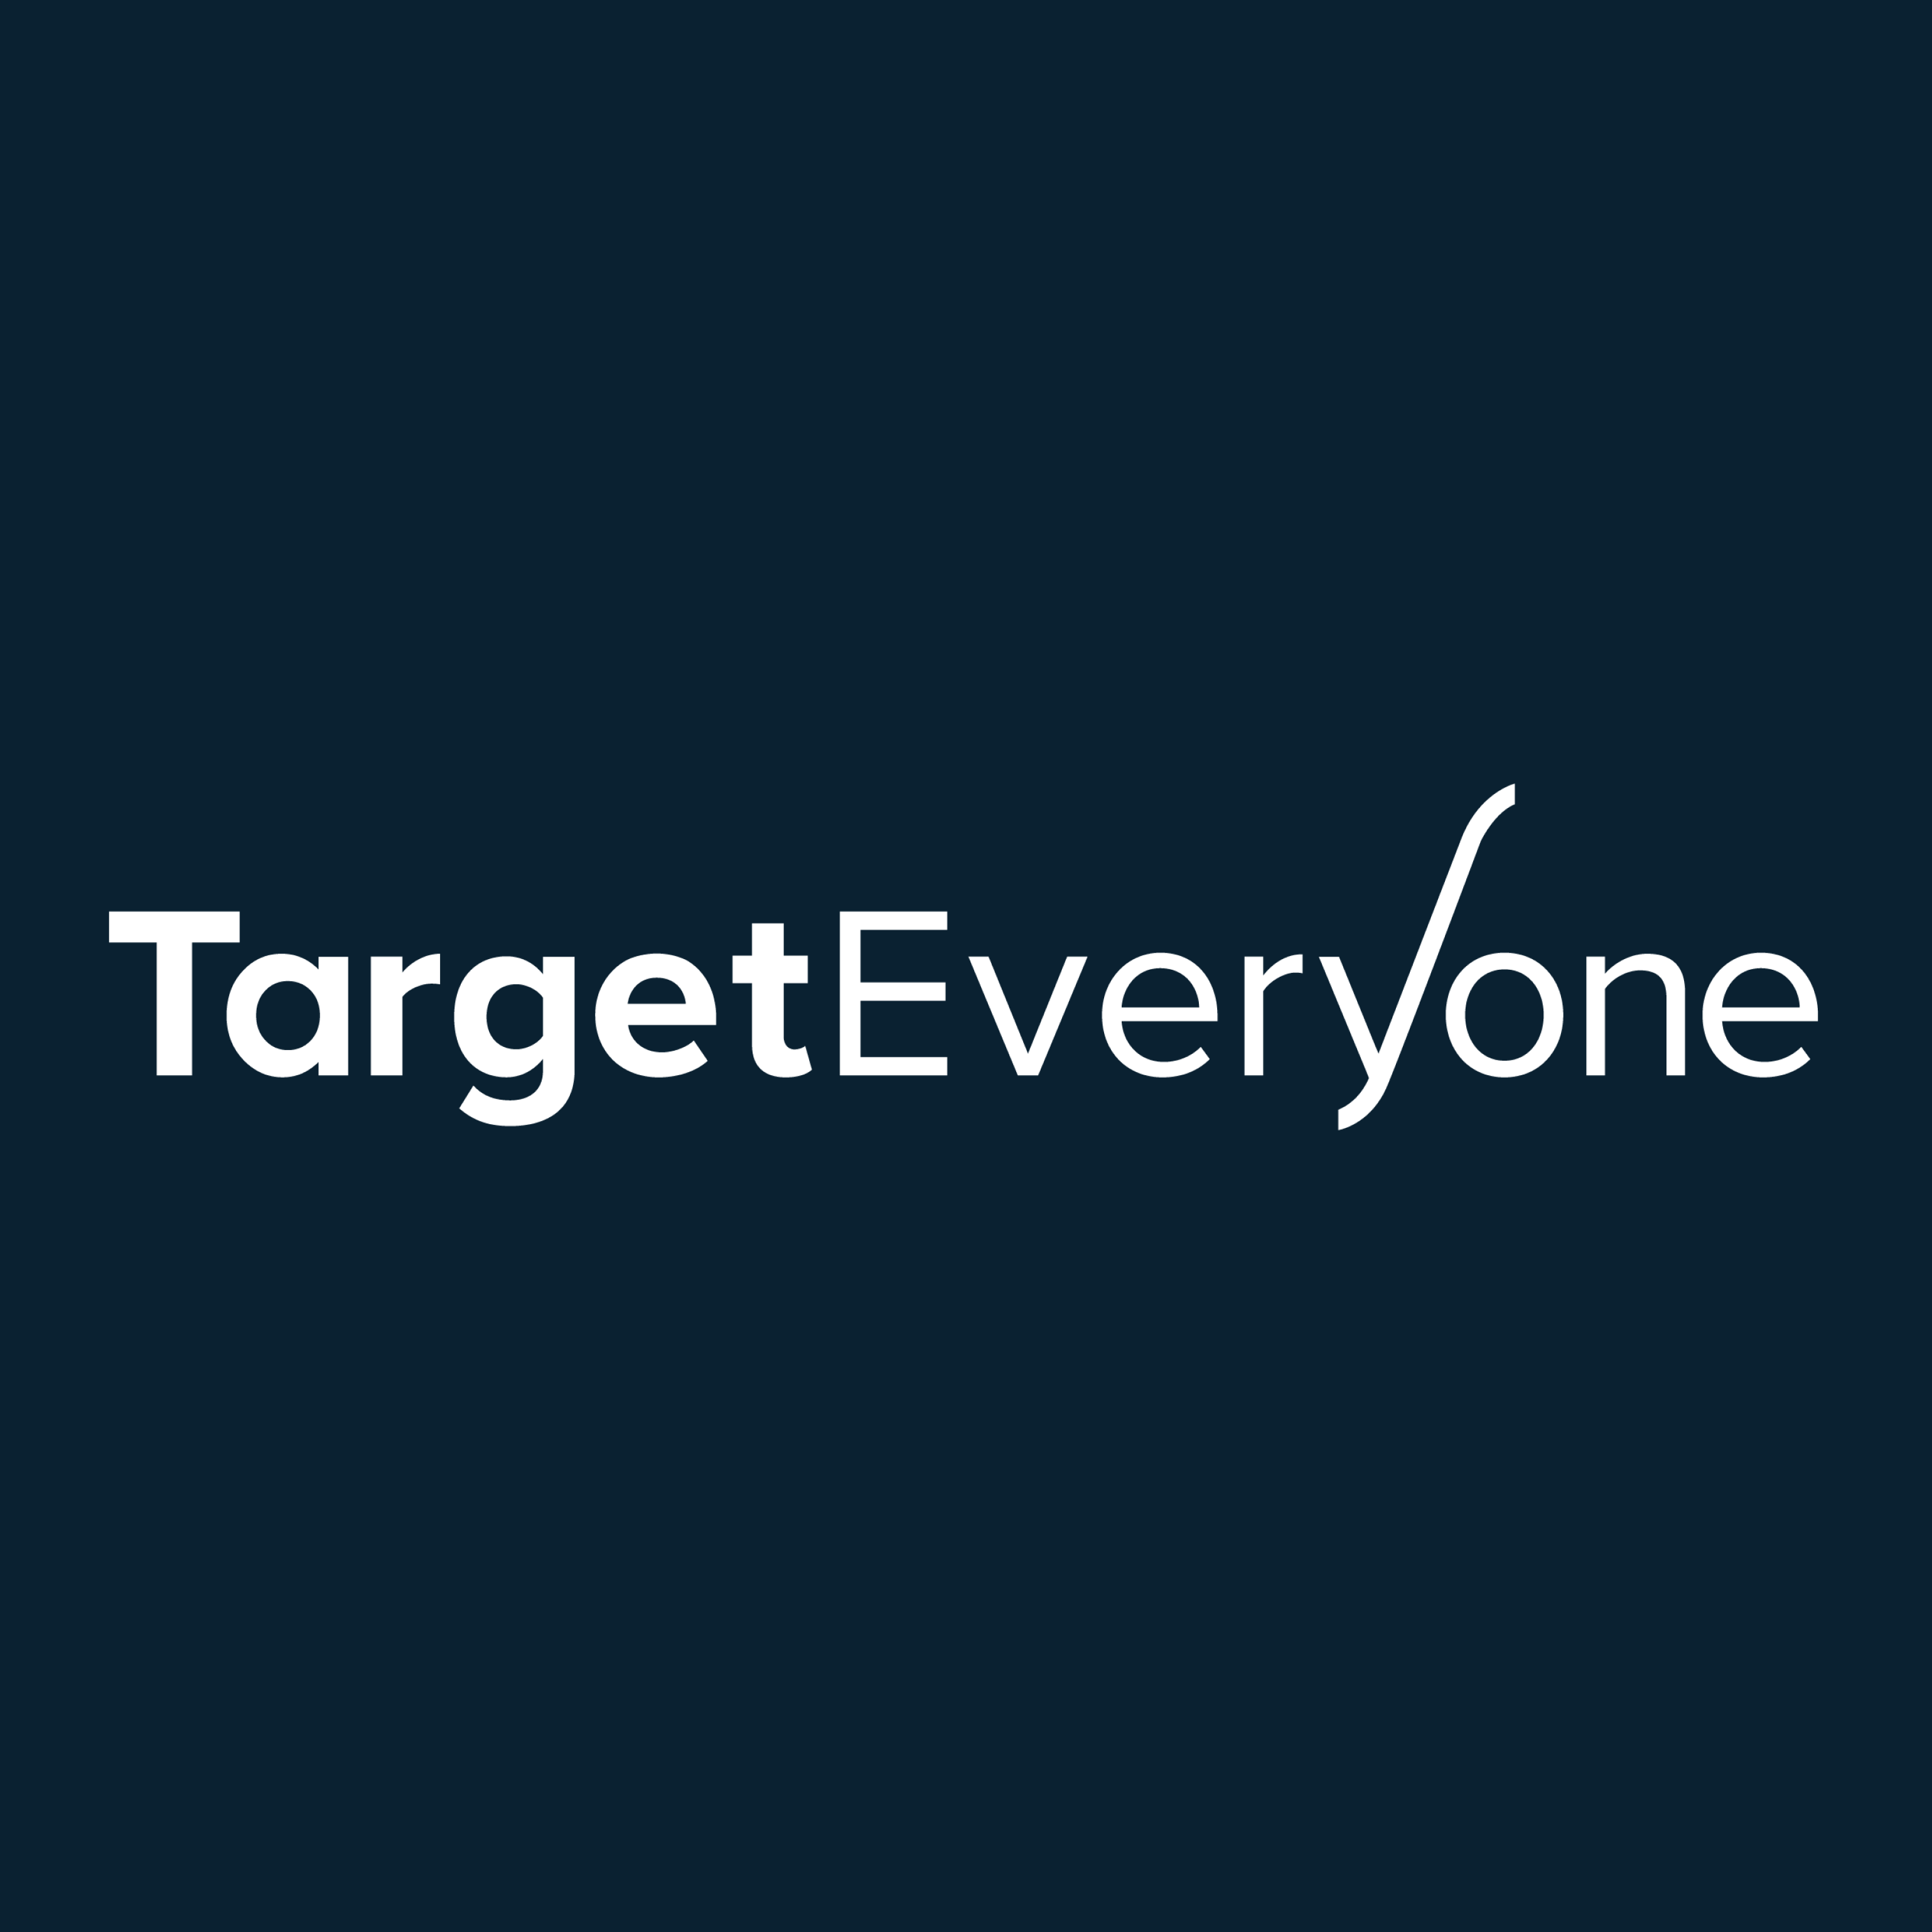 Targeteveryone